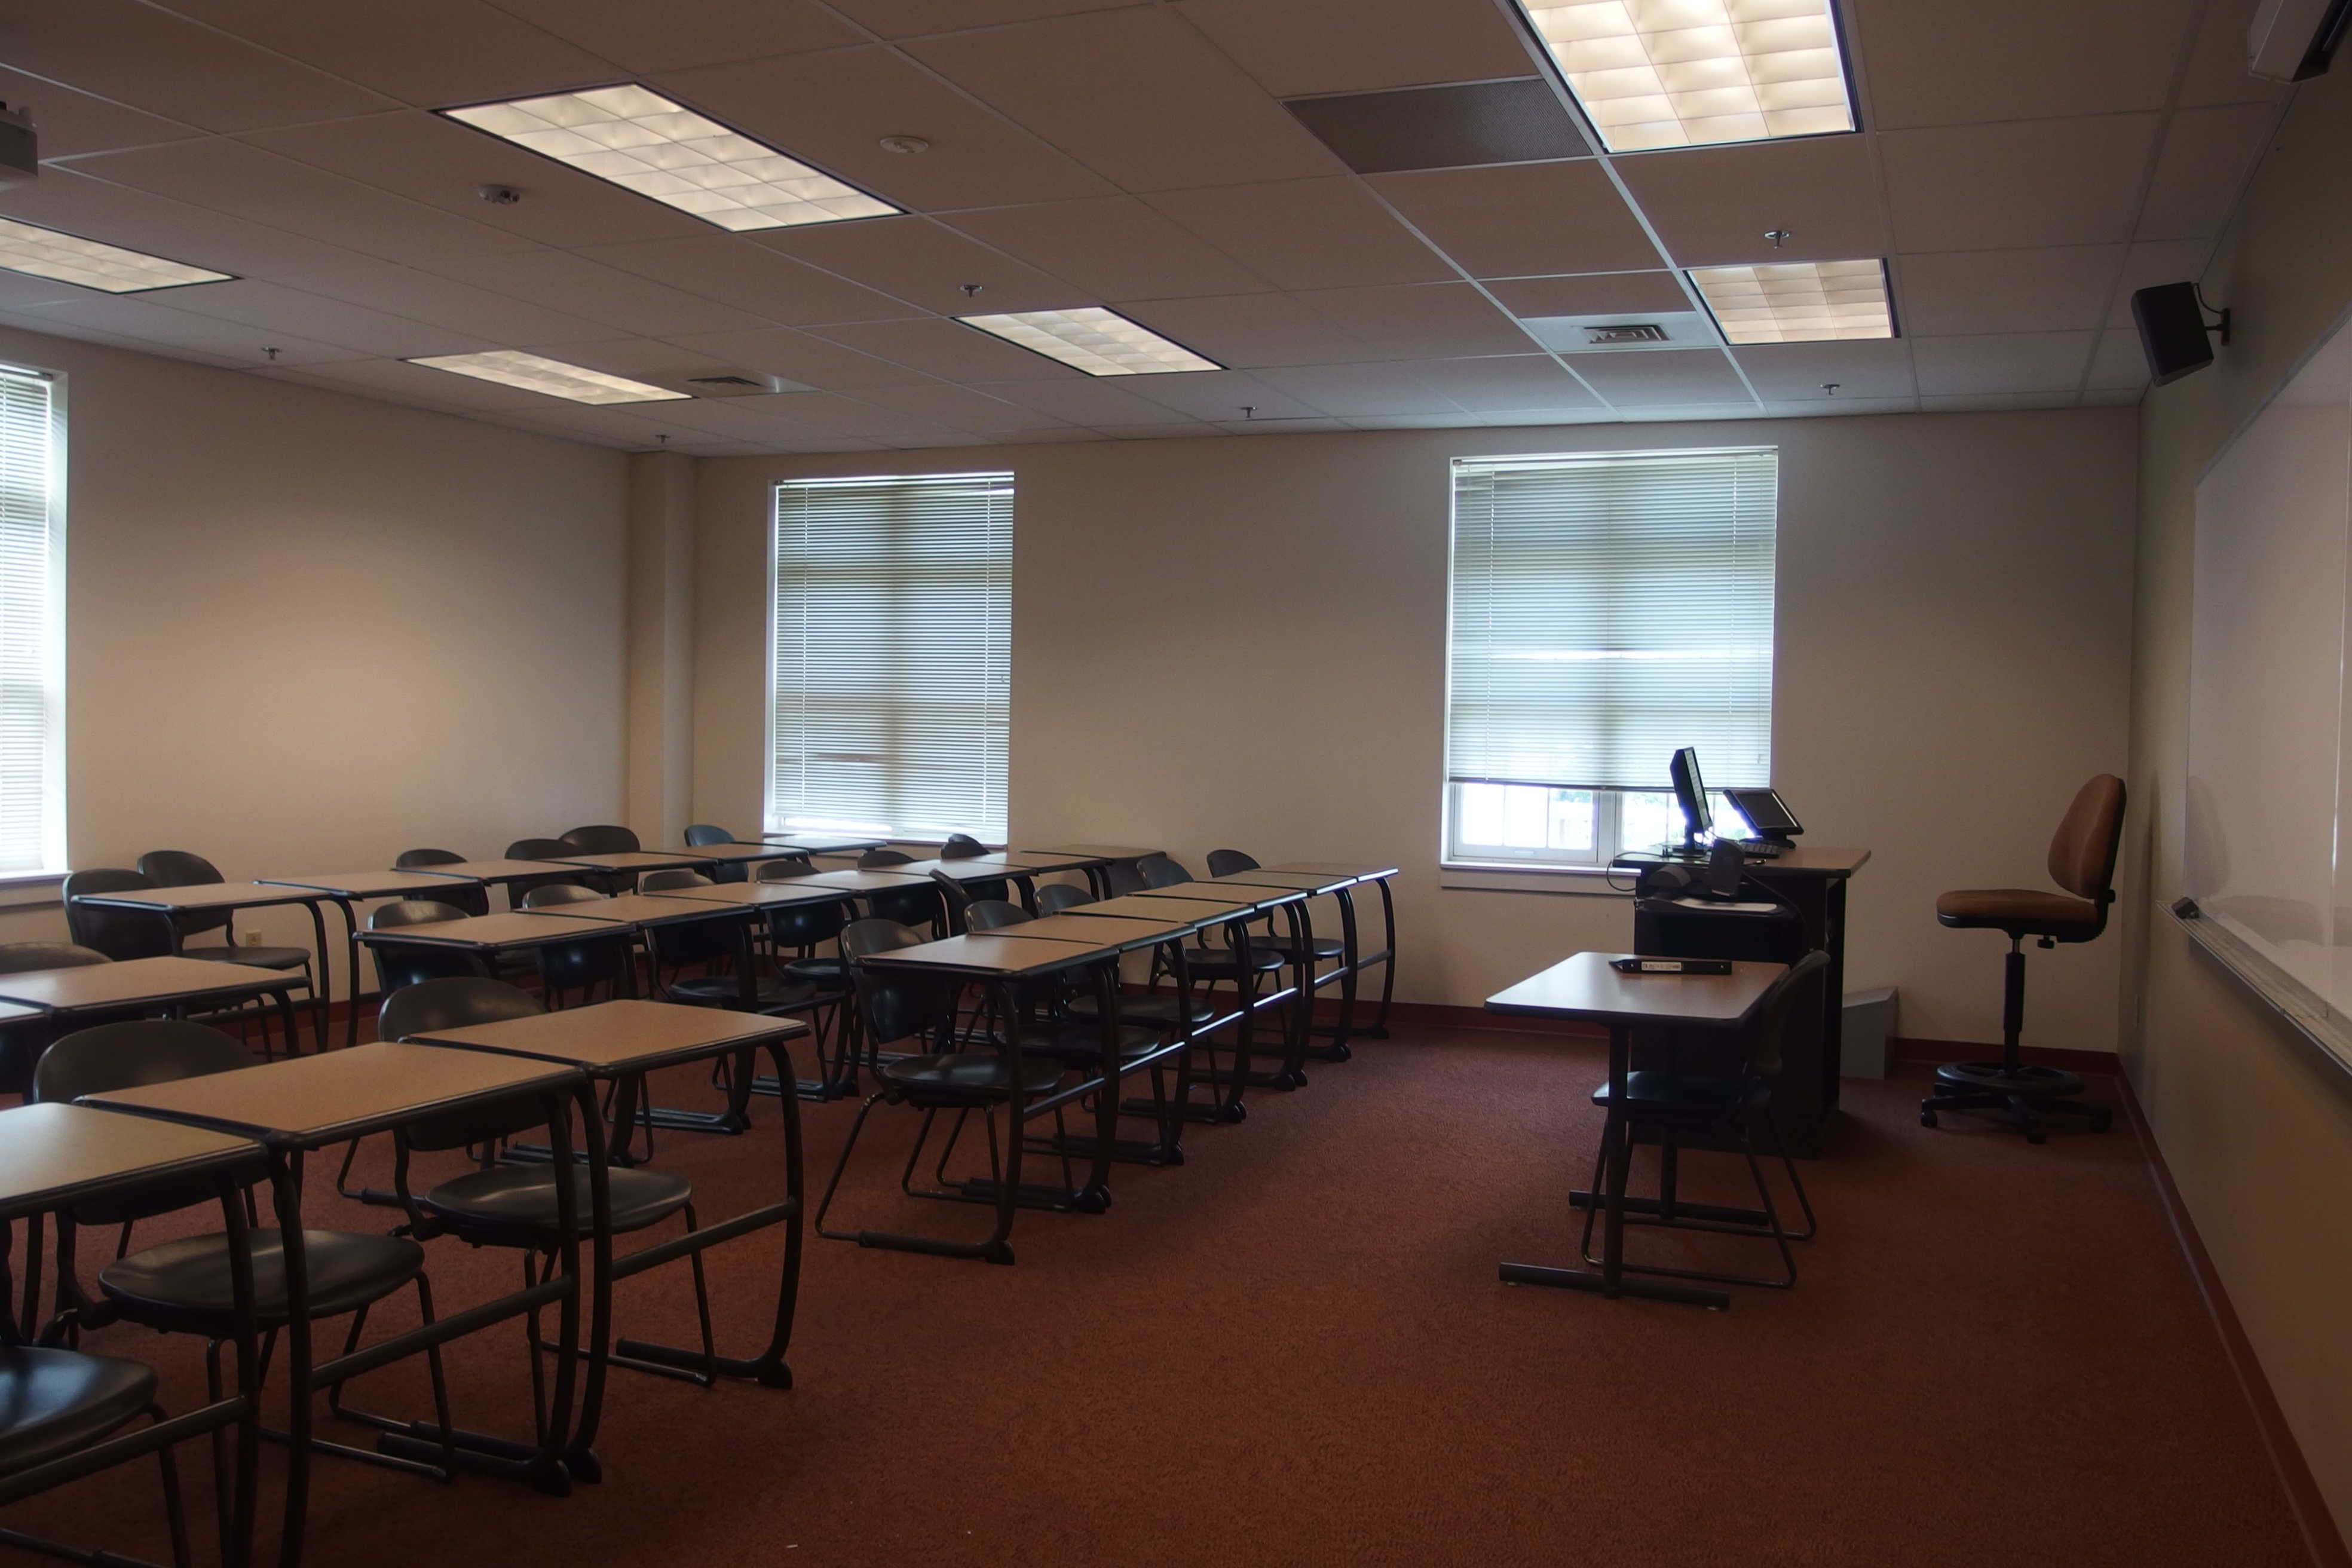 Photo of the classroom taken from the entrance of the room showing the rows of student tables as well as the instructor station